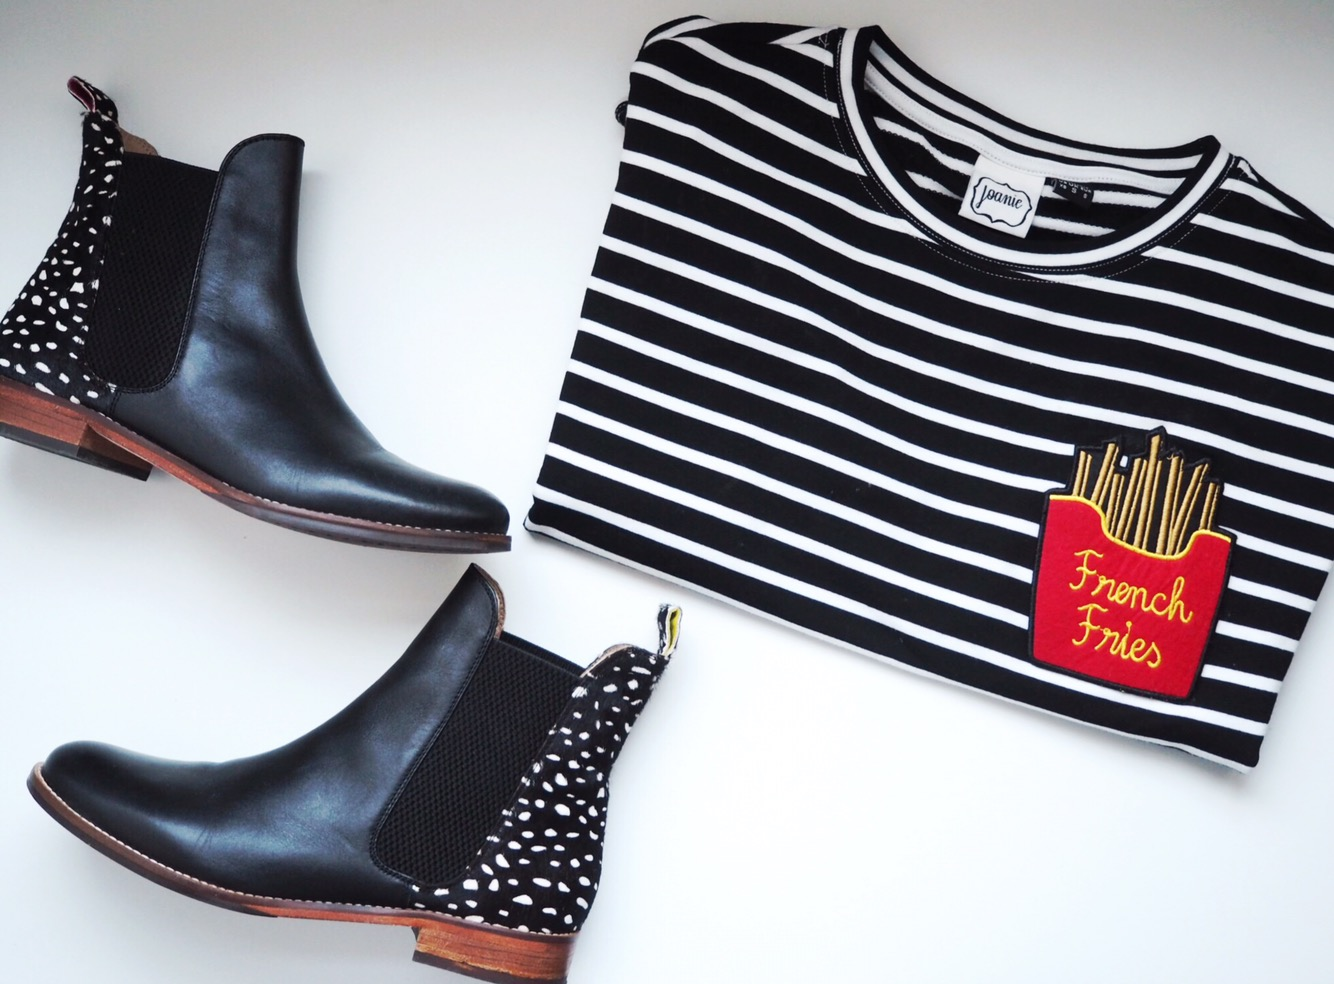 OOTD: Monochrome stripes and Joules boots of dreams